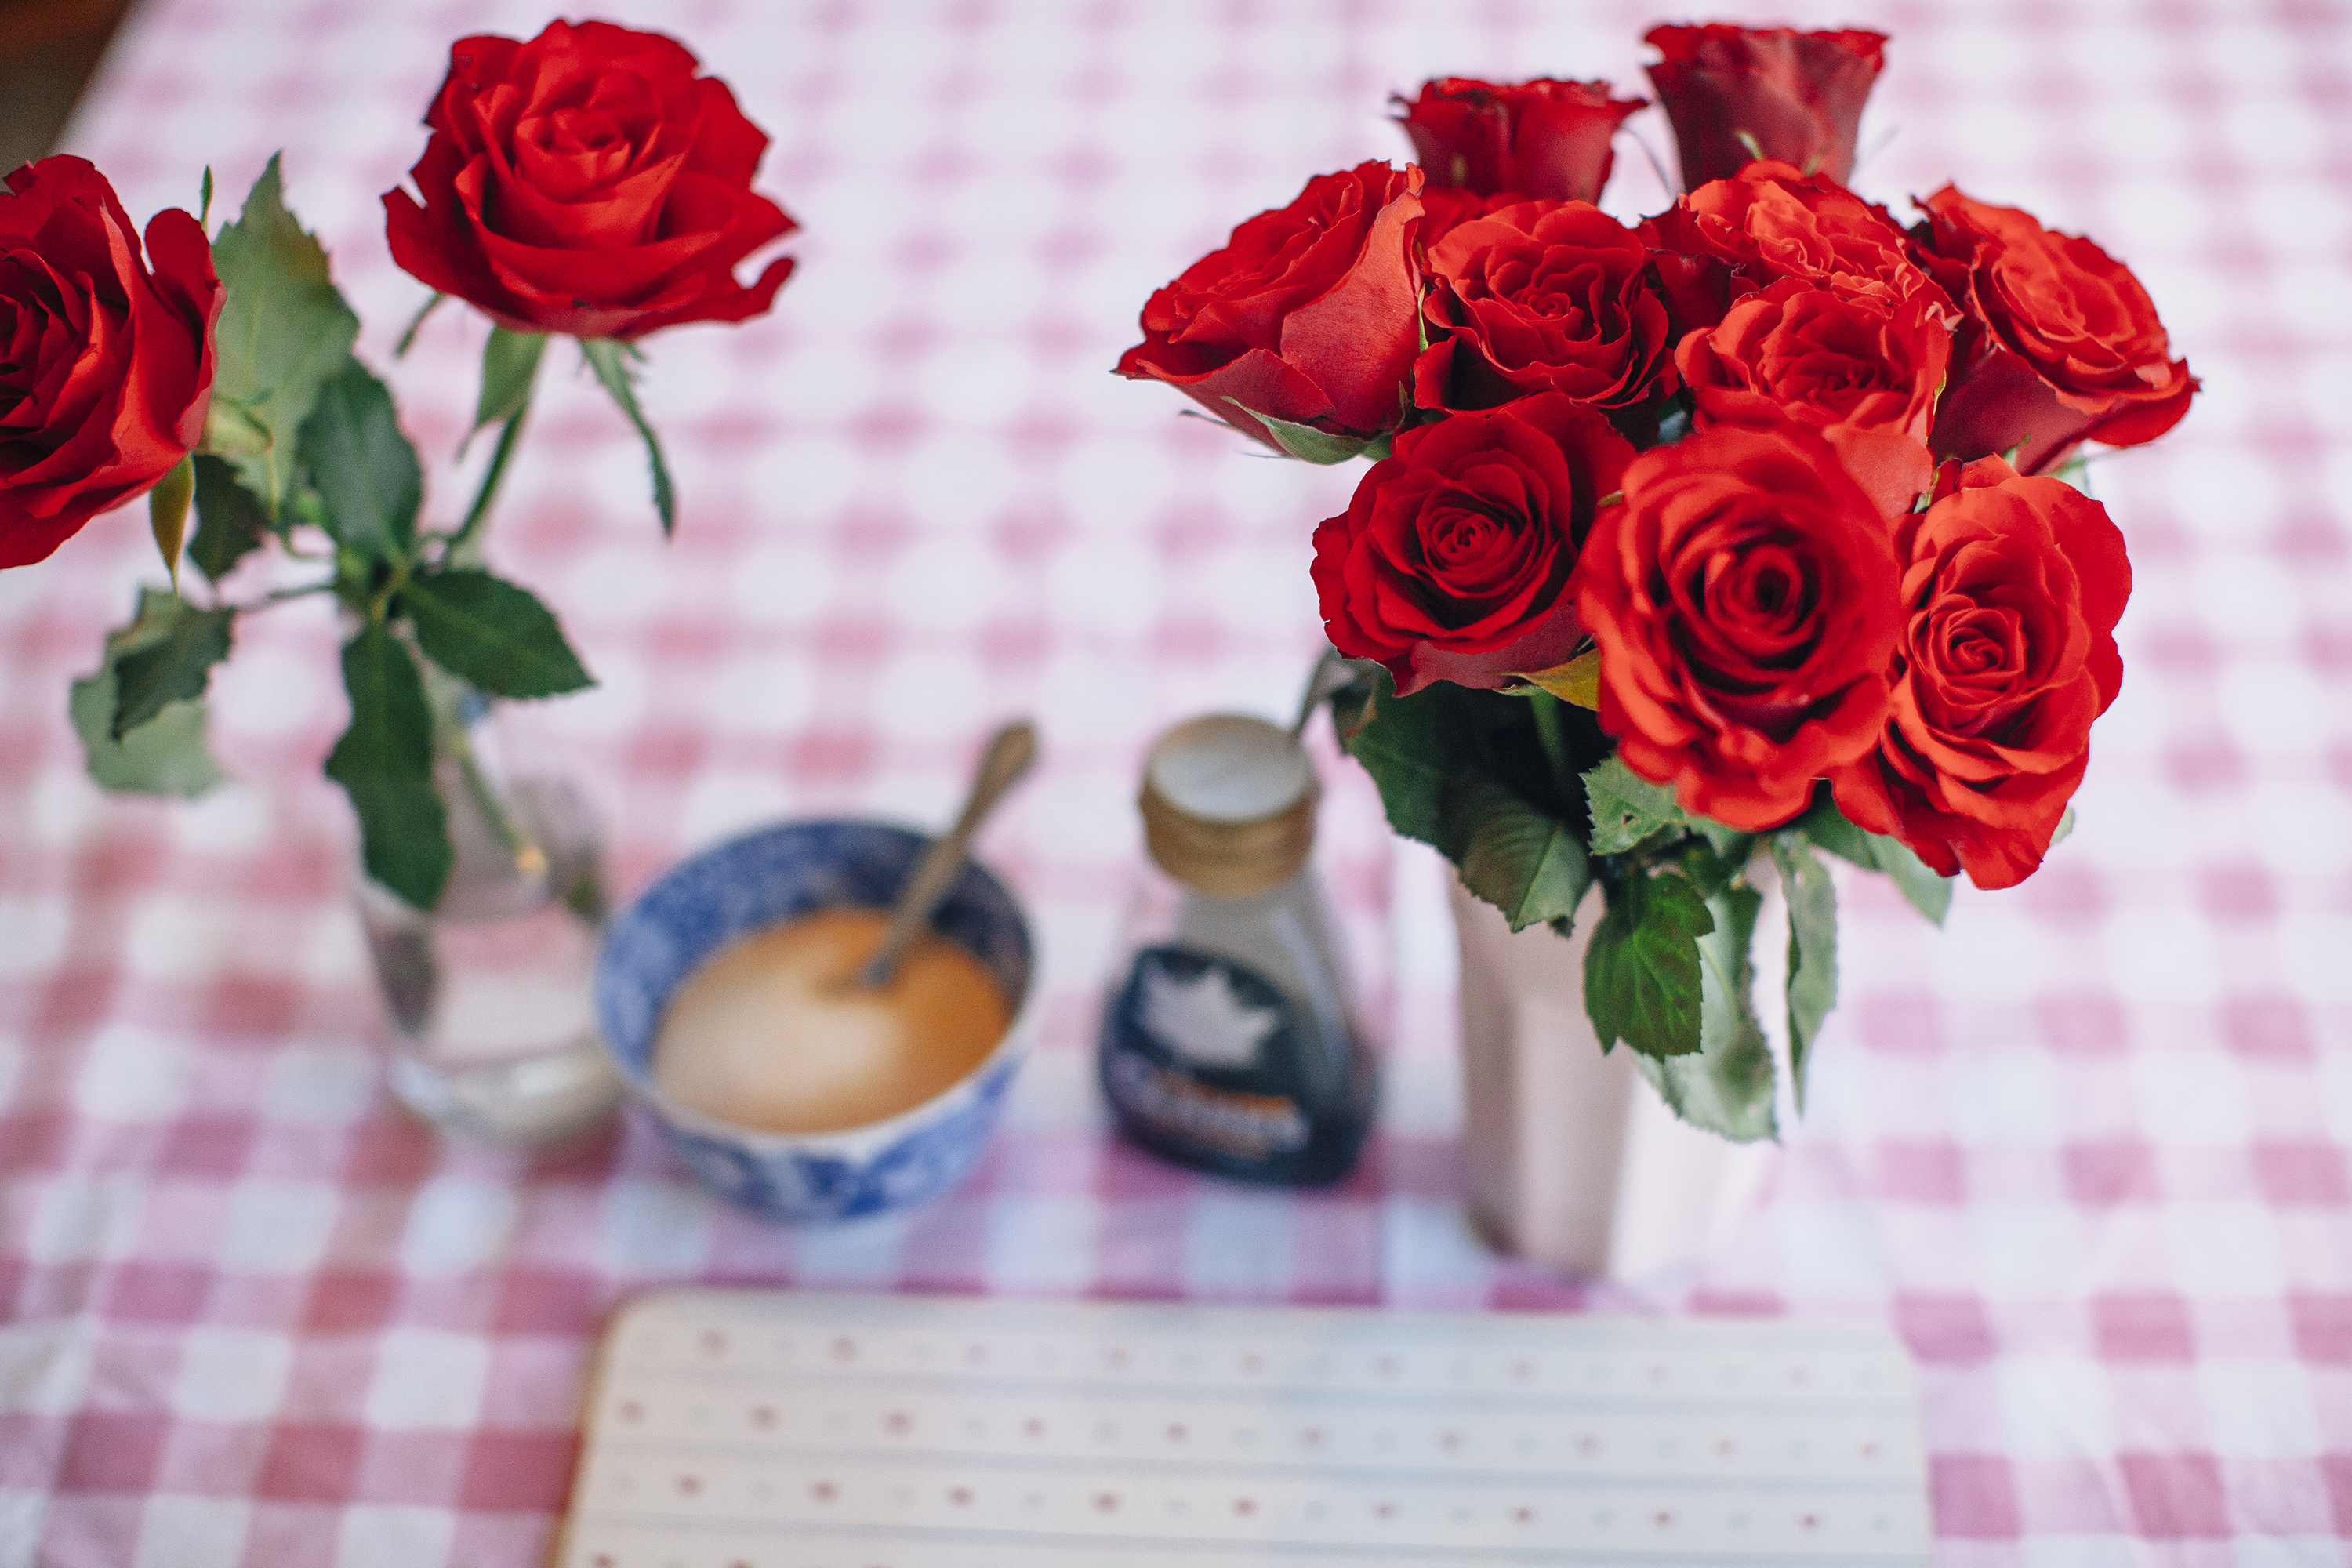 pancakes-katie-leask-photography-la-coco-noire-005-small-roses-surrey-photographer-lacoconoire